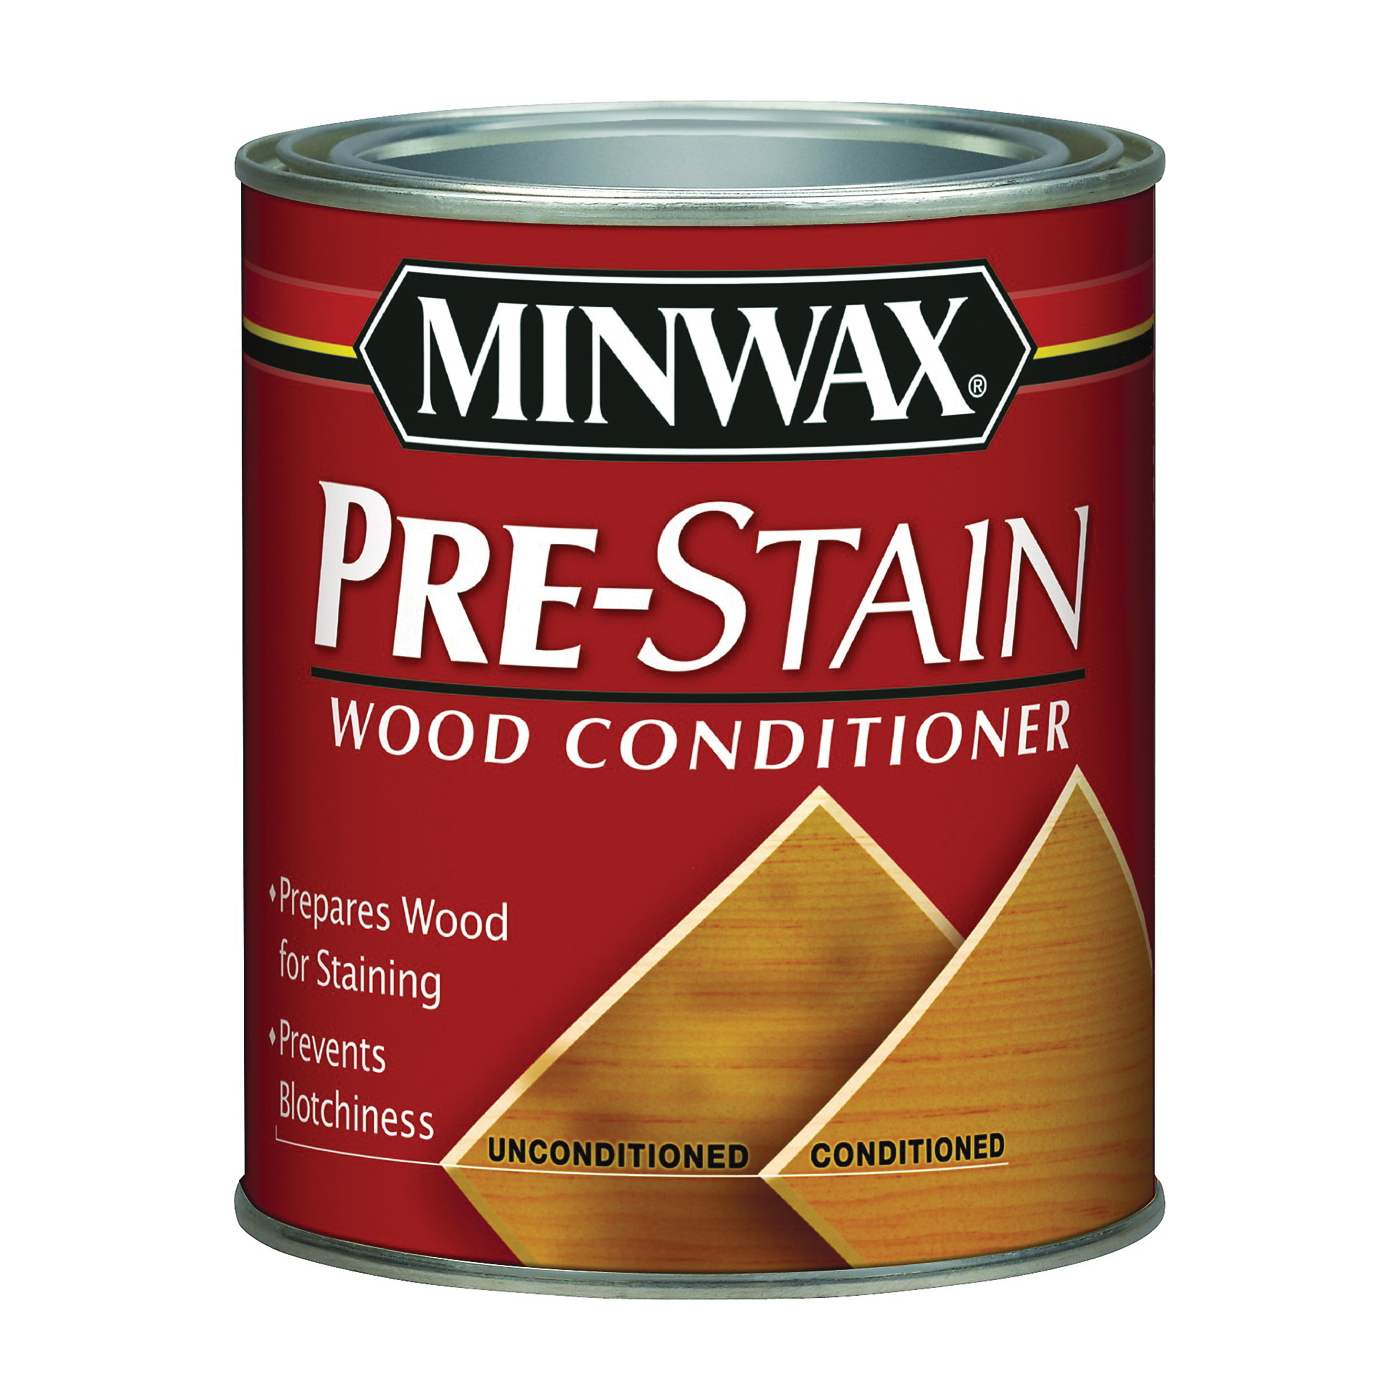 Picture of Minwax 41500000 Pre-Stain Wood Conditioner, Clear, Liquid, 1 pt, Can